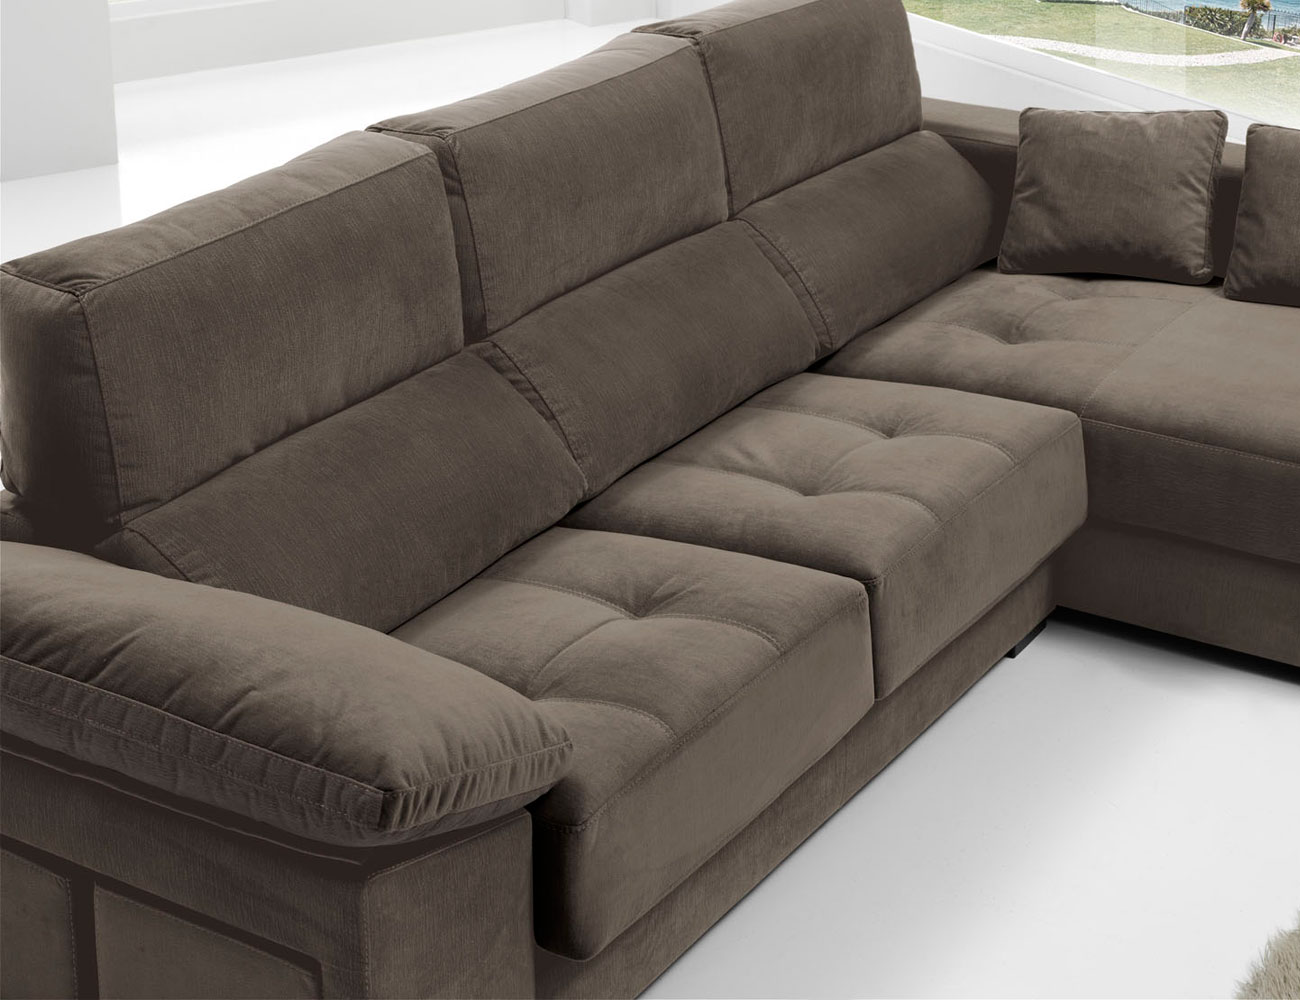 Sofa chaiselongue anti manchas bering pouf 290